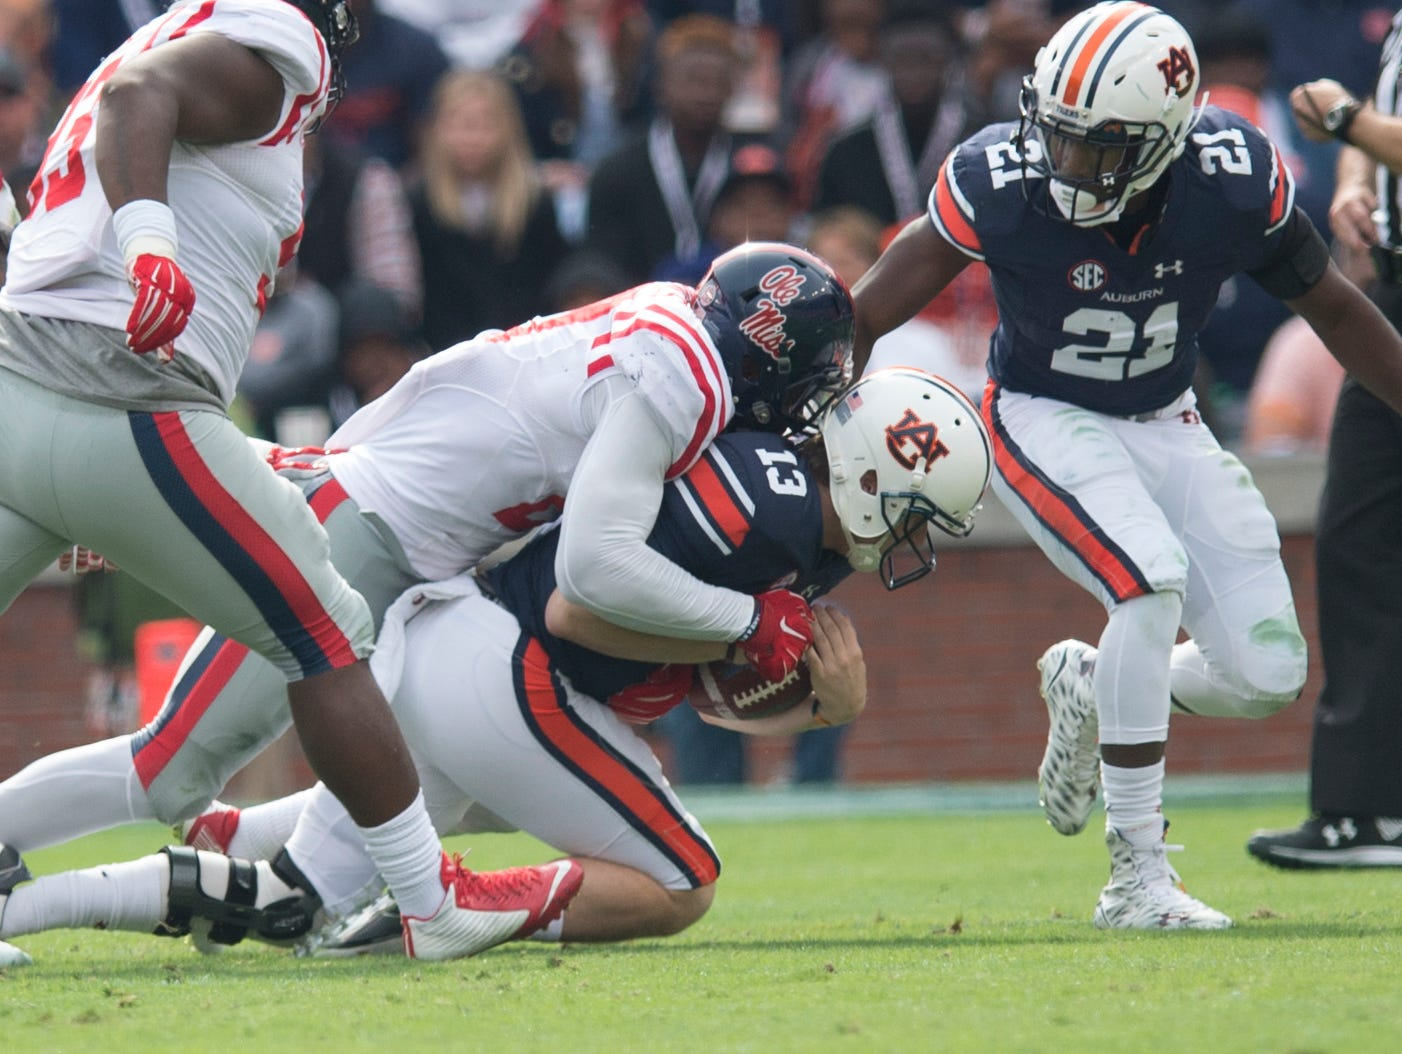 Auburn Tigers quarterback Sean White (13) is sacked by Ole Miss defensive end Marquis Haynes (27) during the NCAA football game between Auburn and Ole Miss on Saturday, Oct. 31, 2015, at Jordan-Hare Stadium in Auburn, Ala. Ole Miss defeated Auburn 27-19.